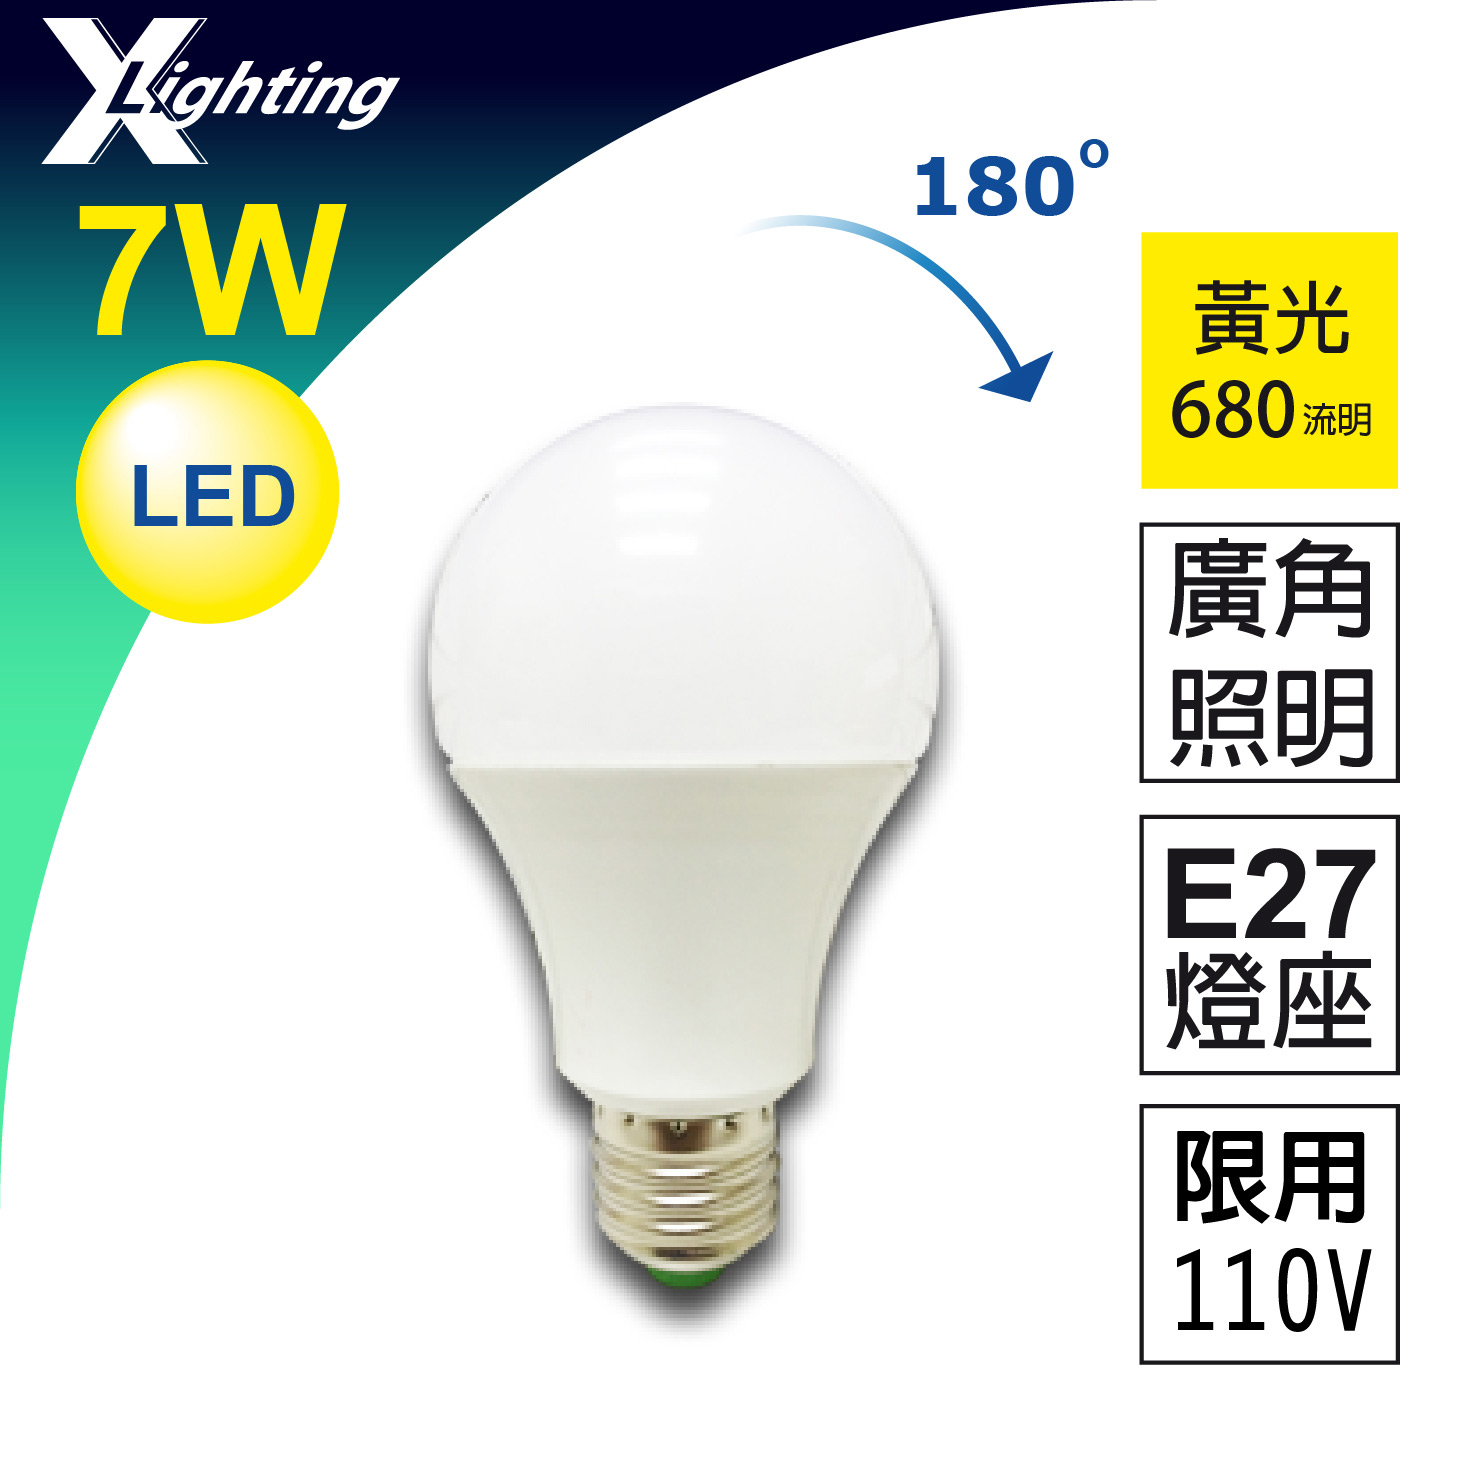 可調光 LED 7W E27(黃光)燈泡 限110V EXPC X-LIGHTING(3W 5W 9W 10W 12W)